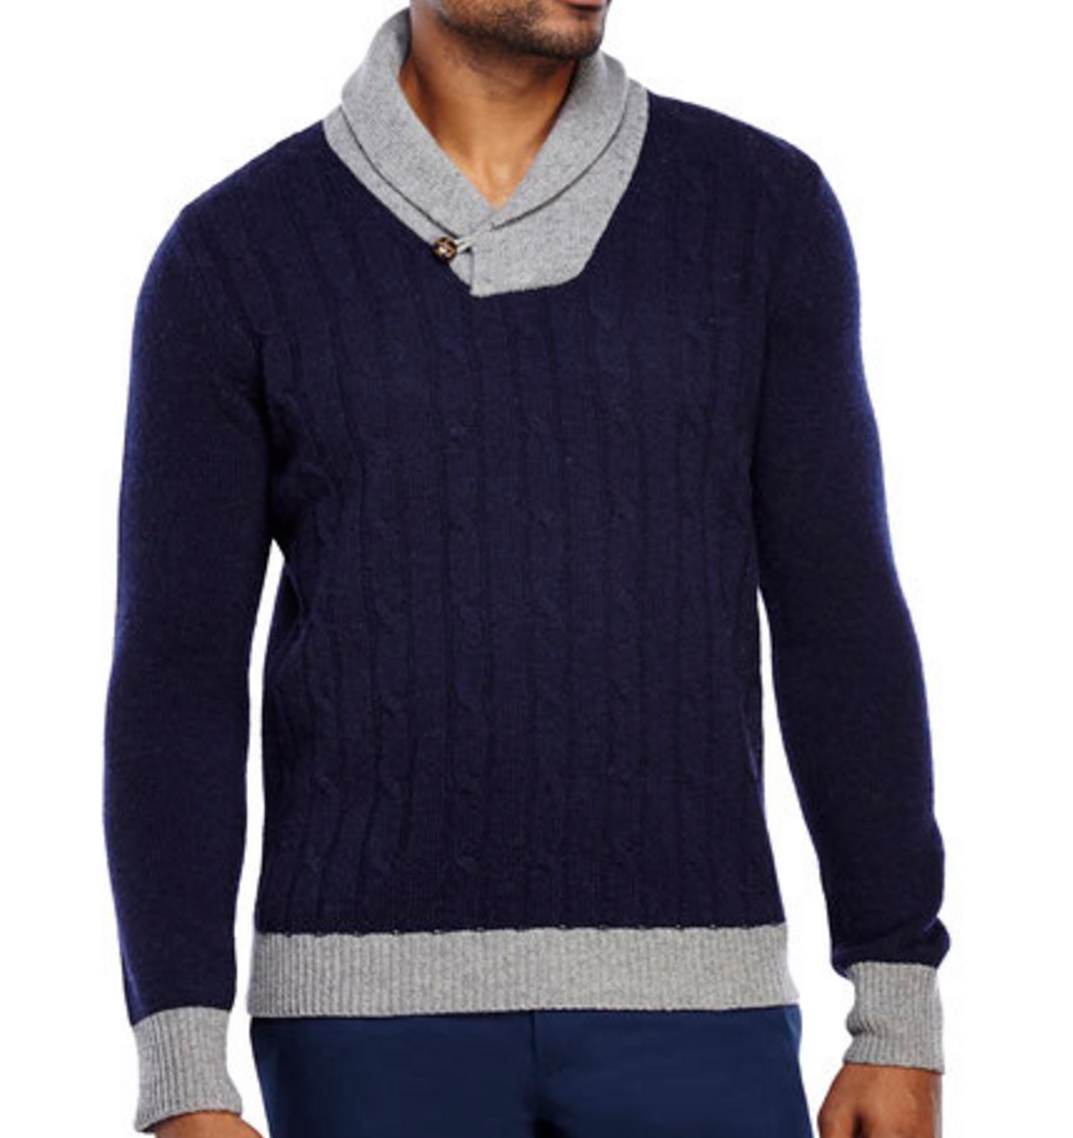 Barque New York navy shawl collar cable knit wool